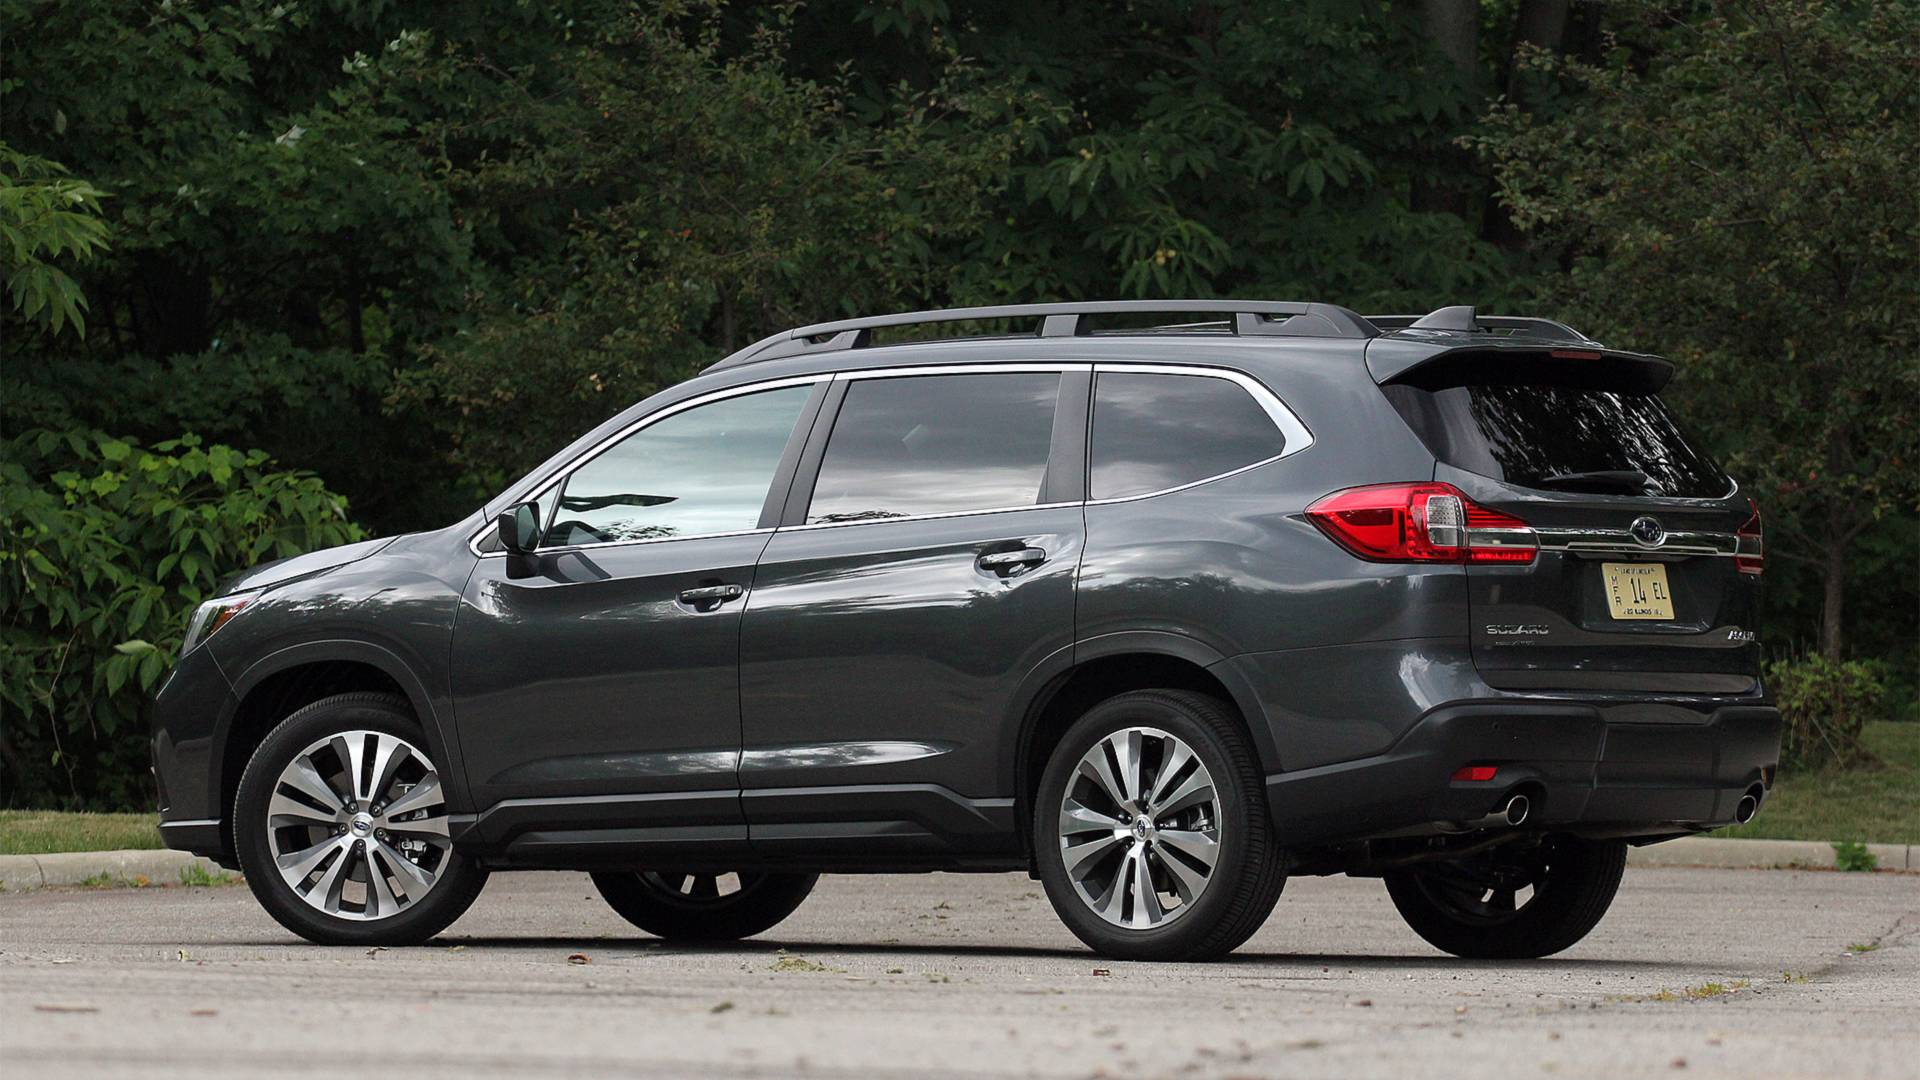 Subaru Ascent Vs  Mazda CX-9: Substance, Meet Style